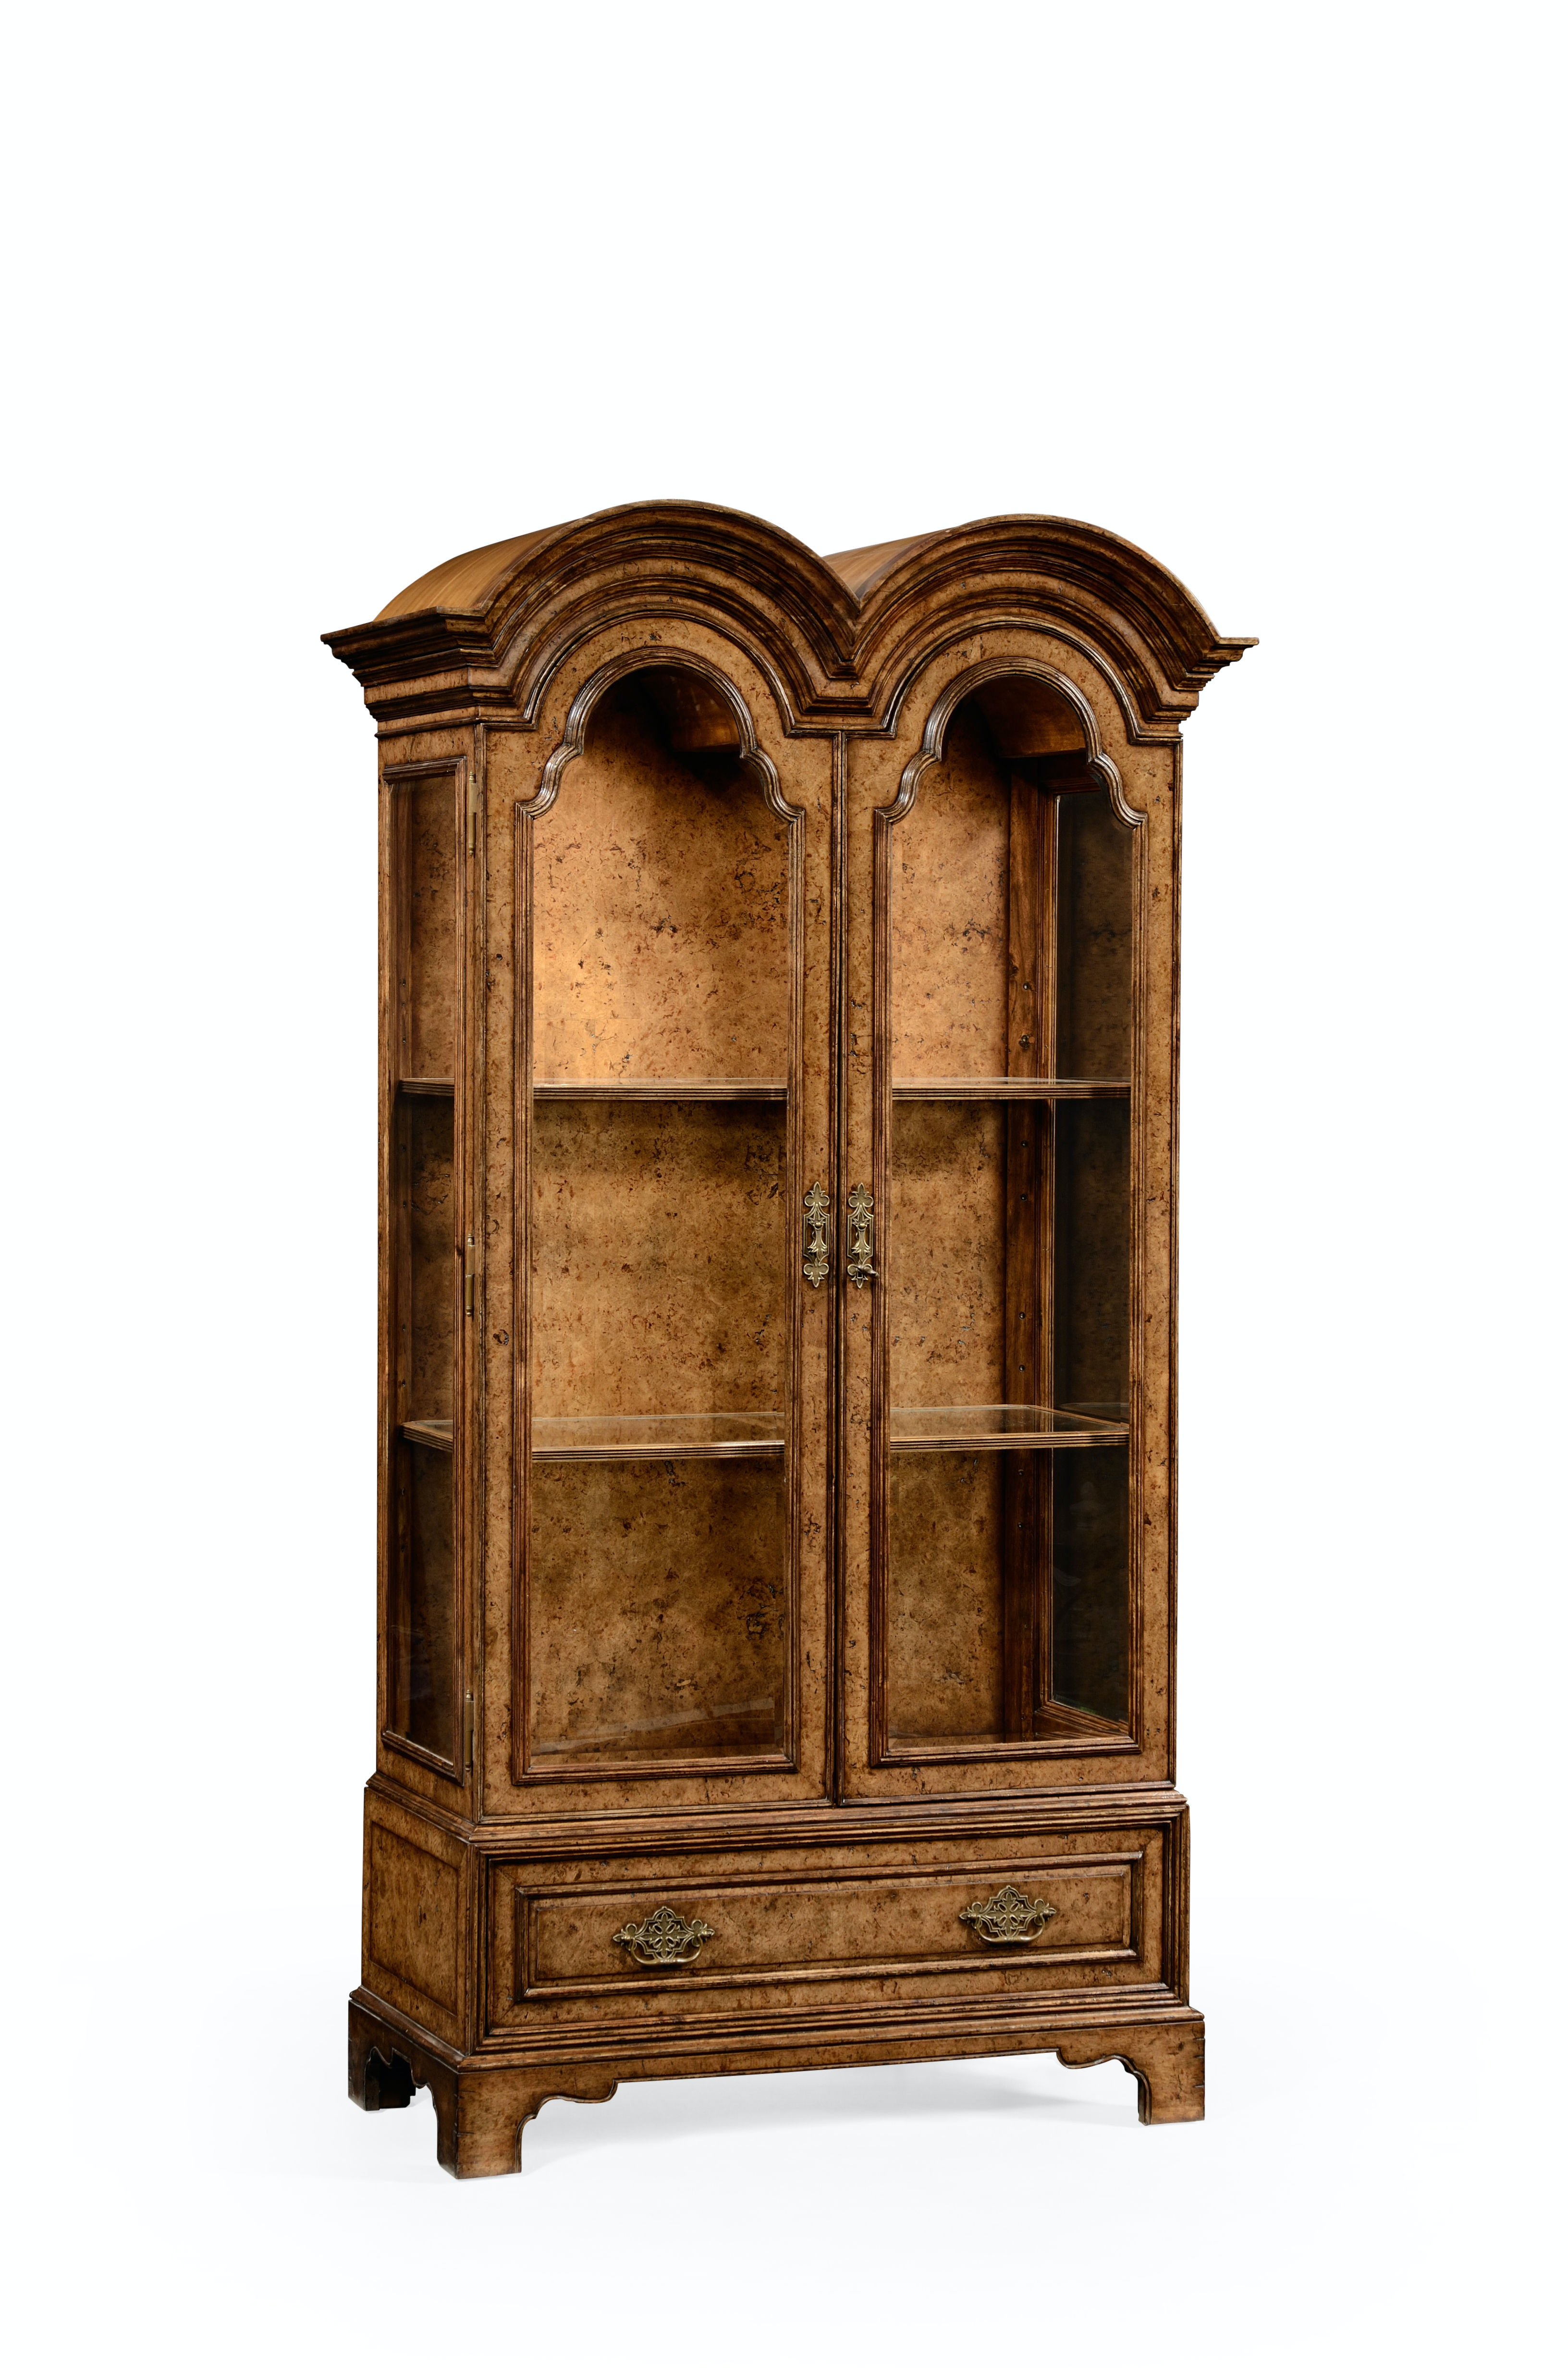 Jonathan Charles Queen Anne Pollard Veneer Bookcase With Glazed Doors 494485-LRO from Walter E  sc 1 st  Walter E. Smithe & Queen Anne Pollard Veneer Bookcase With Glazed Doors 494485-LRO